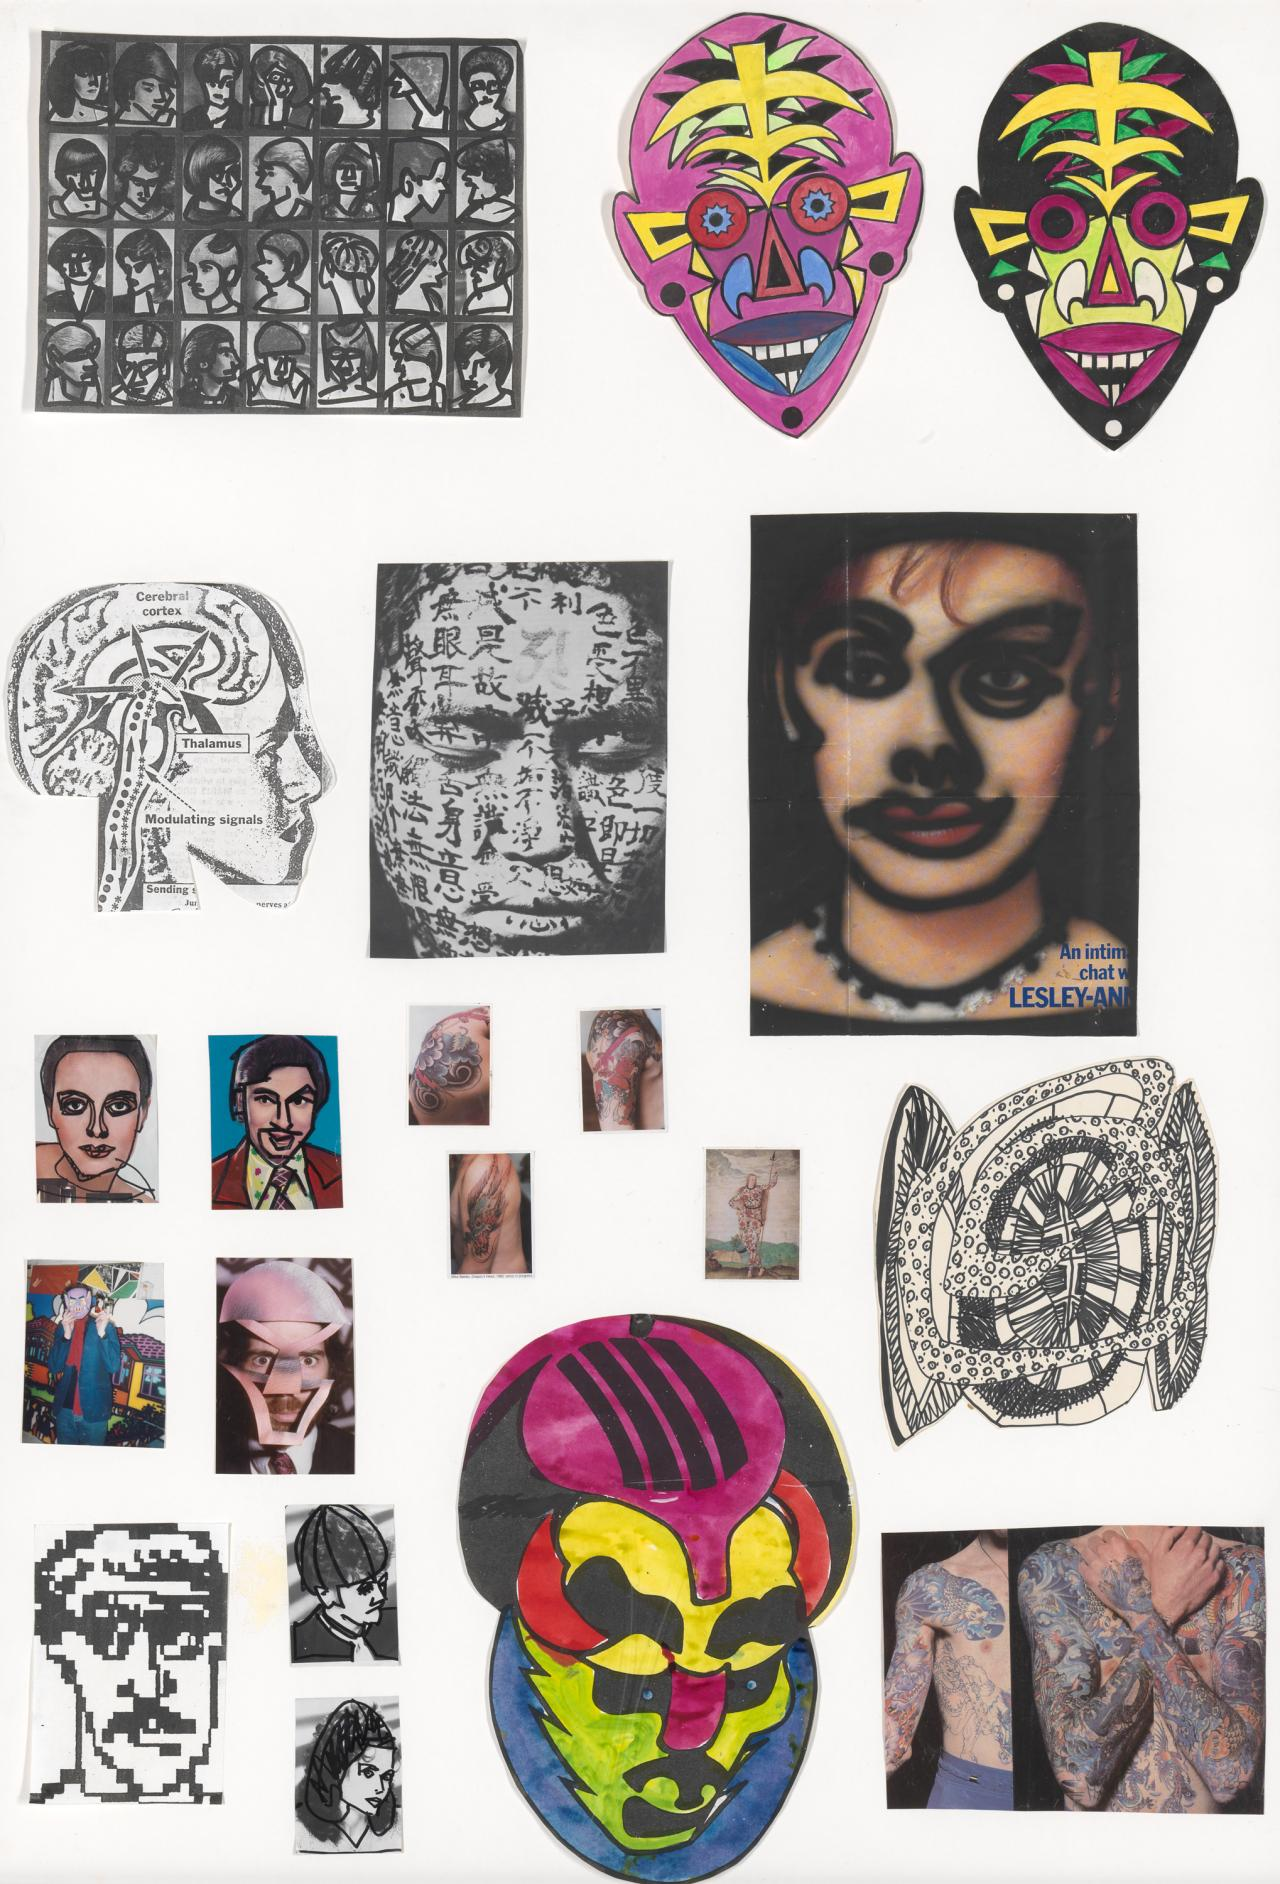 (Source material for Tattooed head)